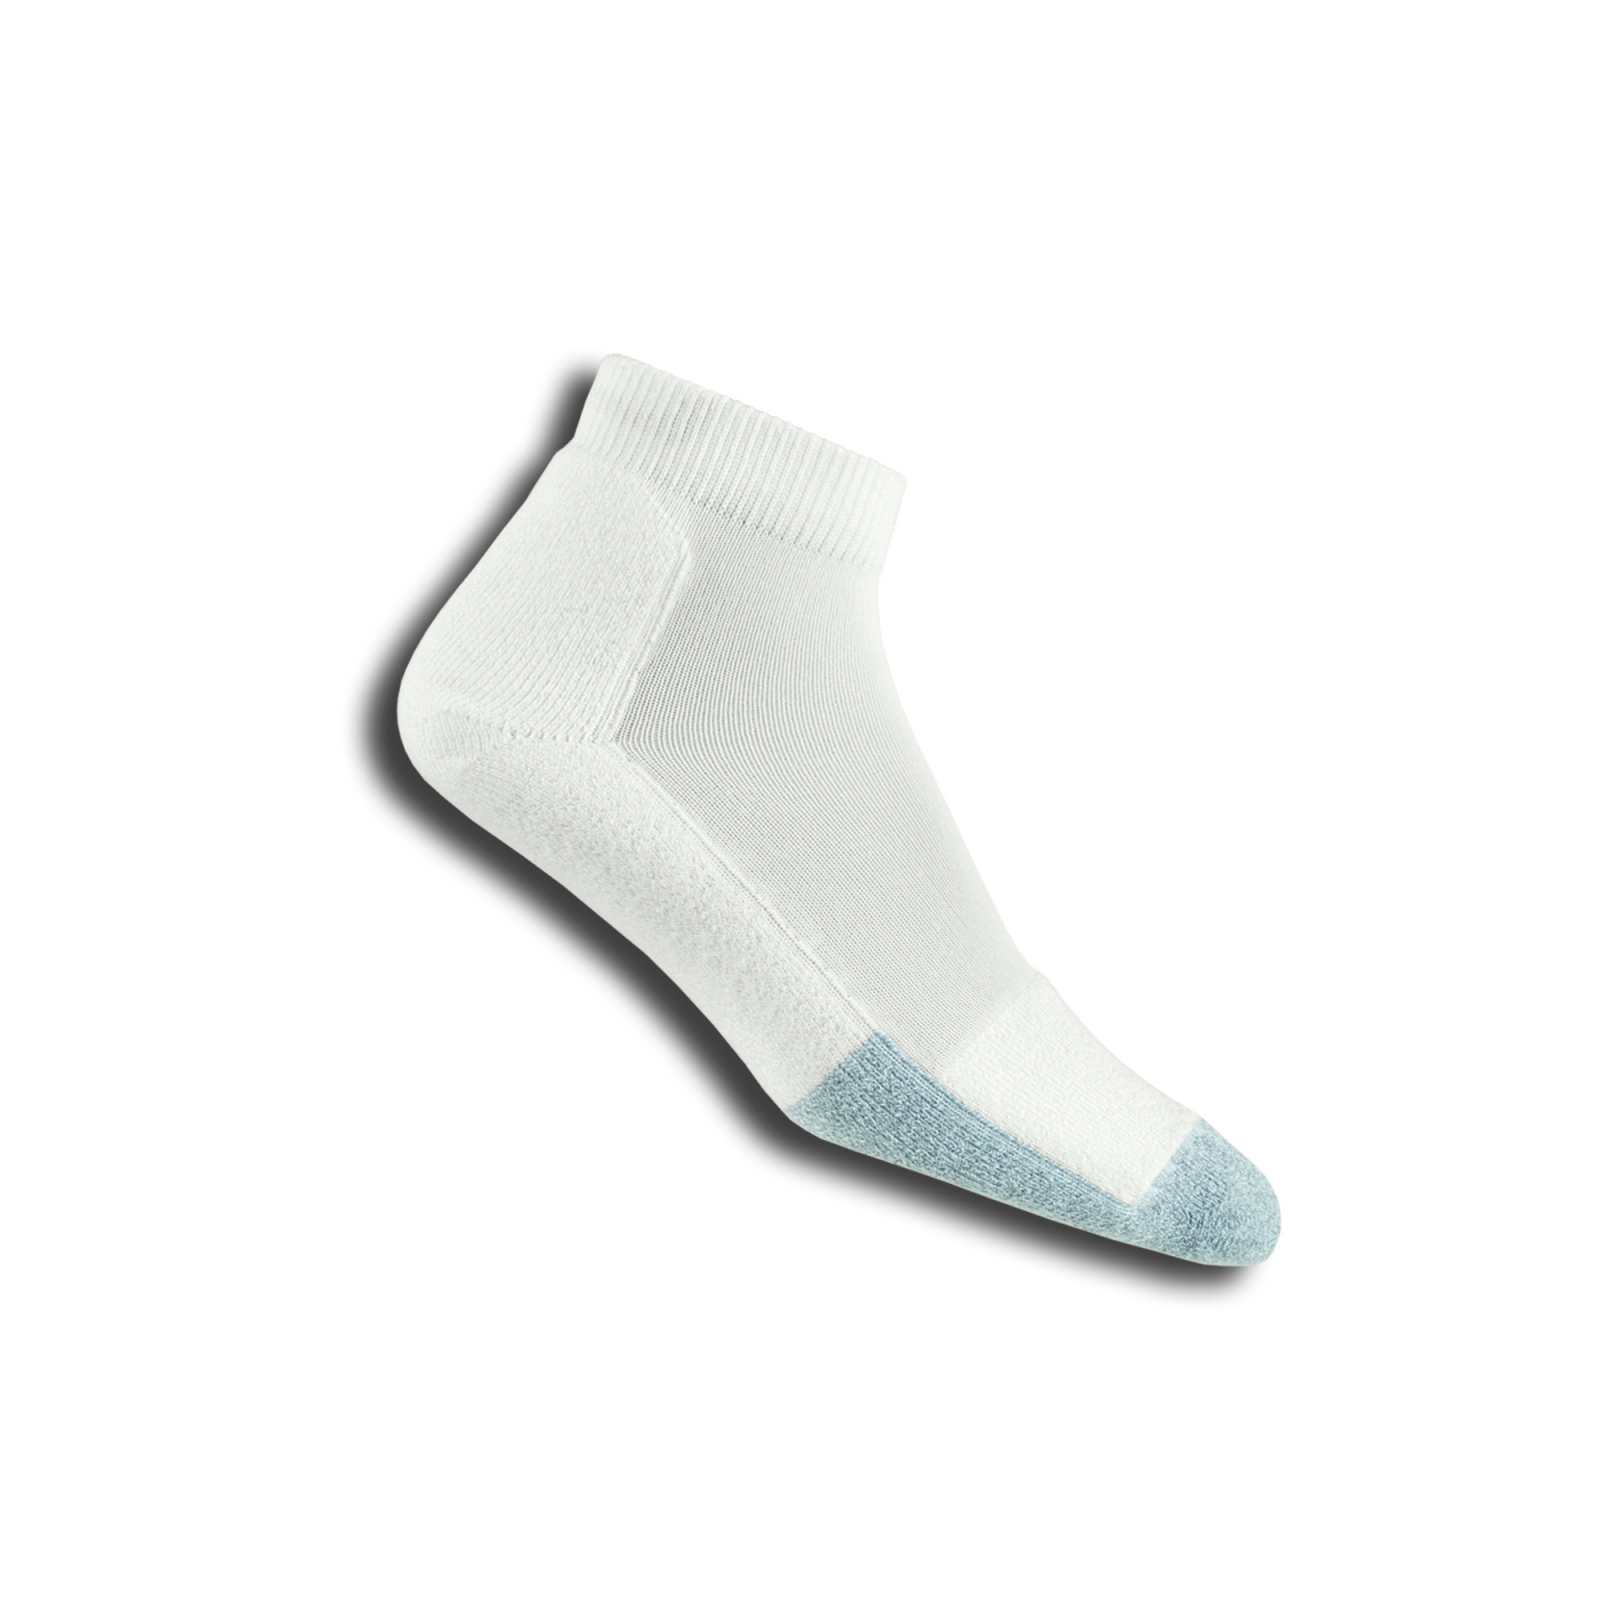 Thorlo Tennis Sock Mini Crew